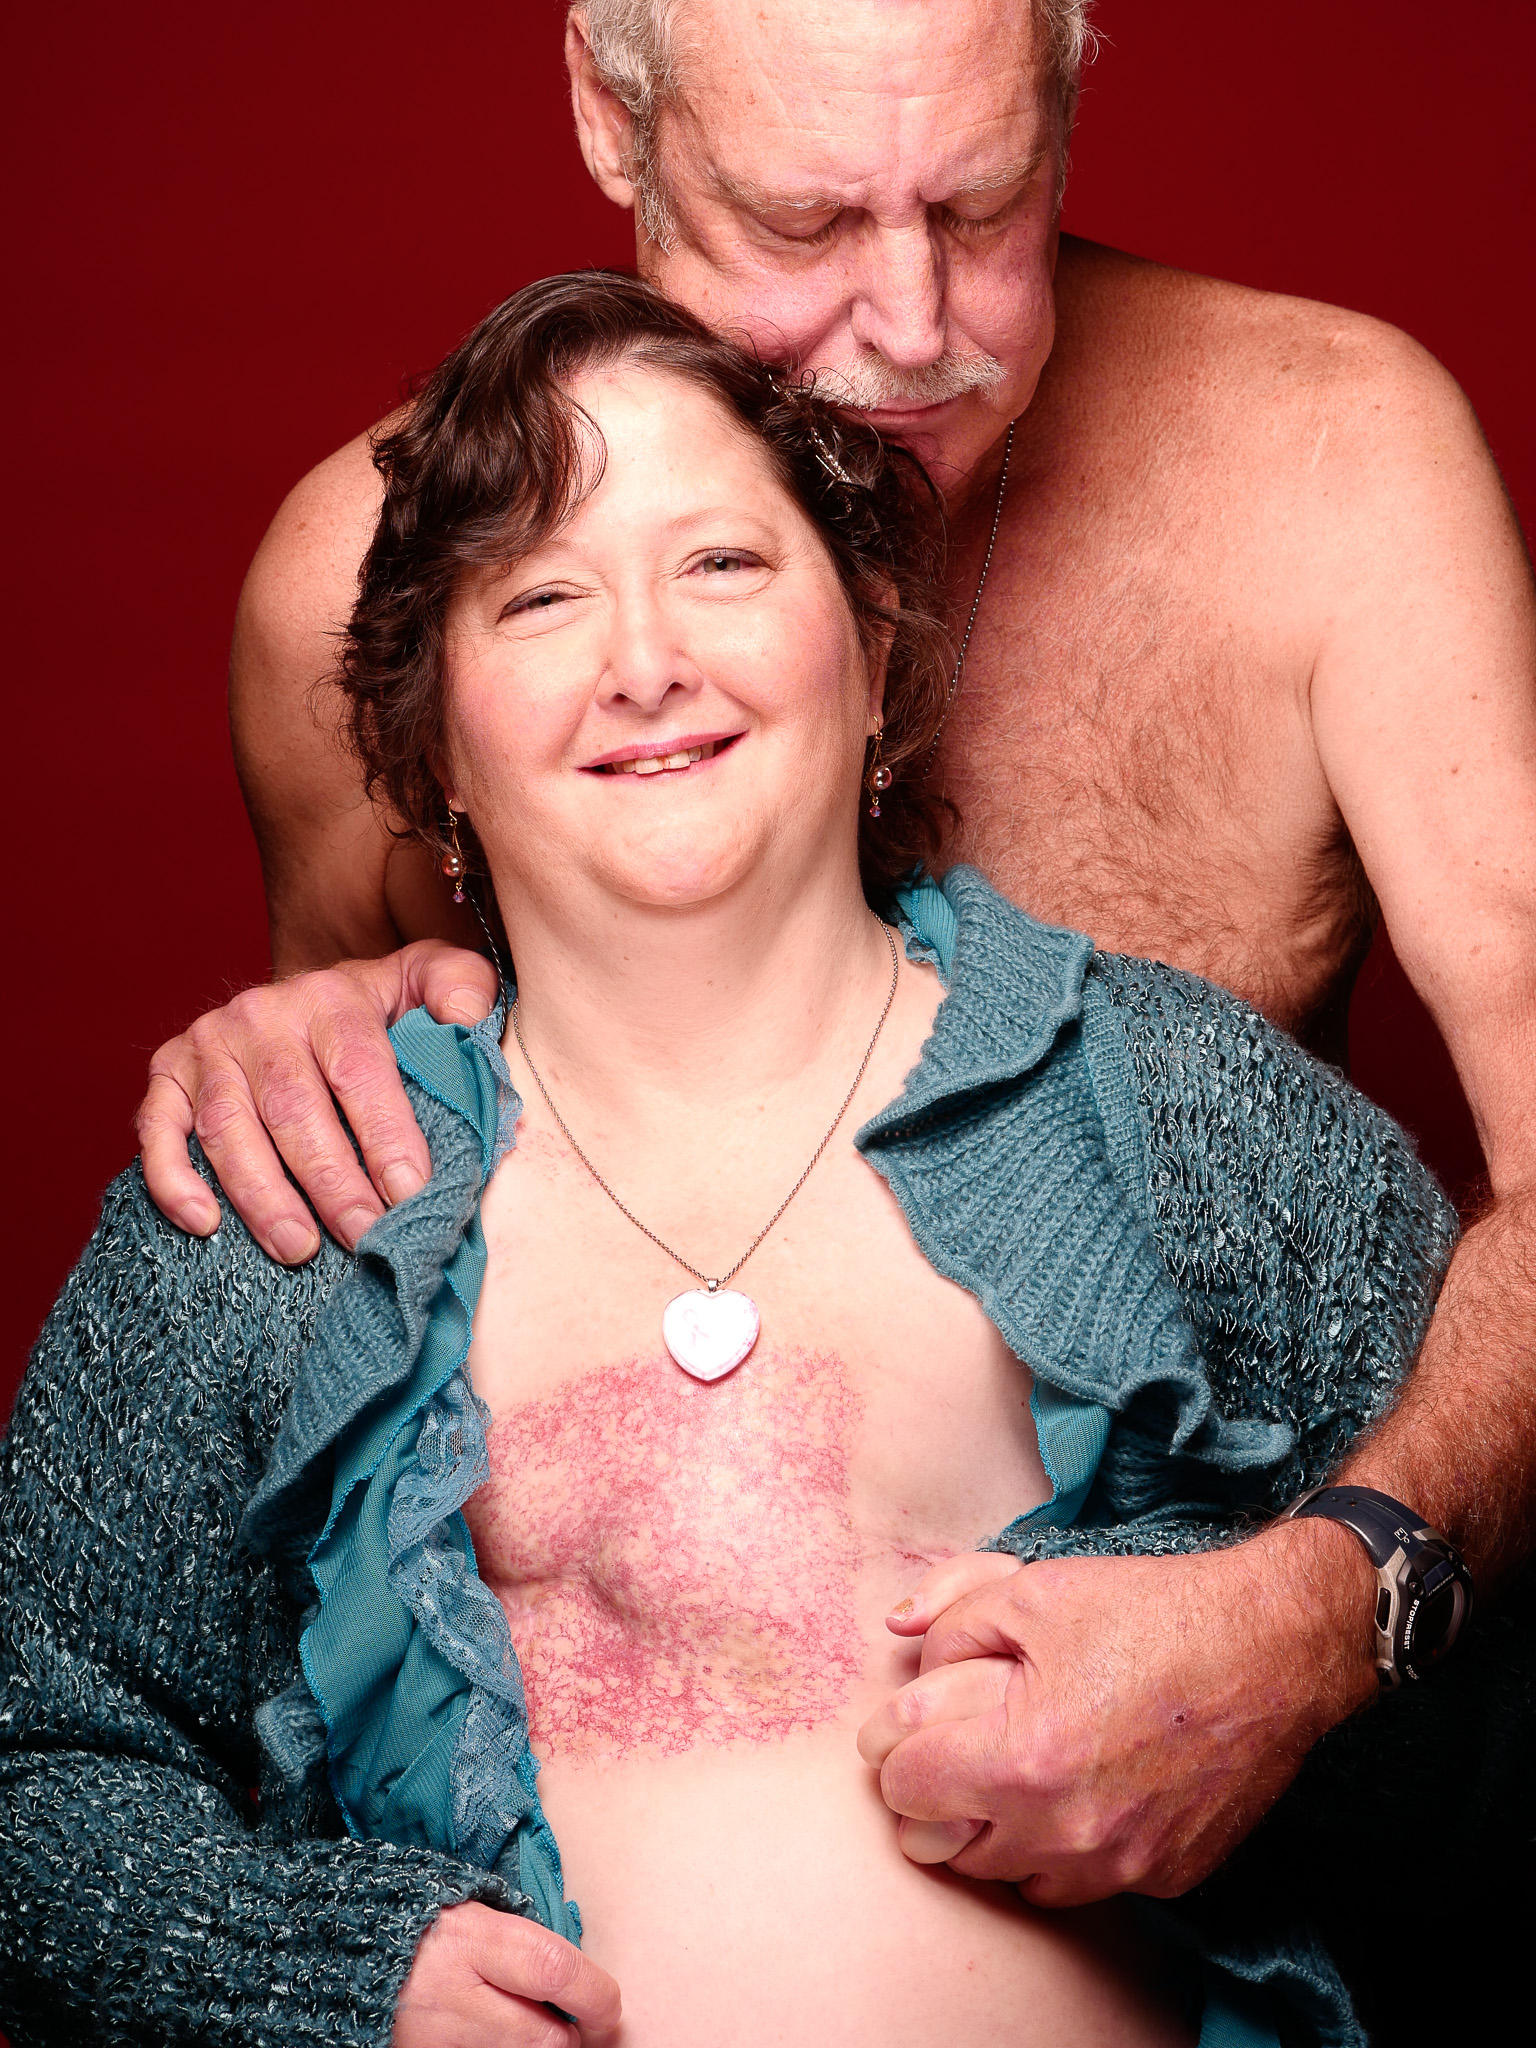 Why I Wouldnt Let My Husband Touch My Breasts Alternet